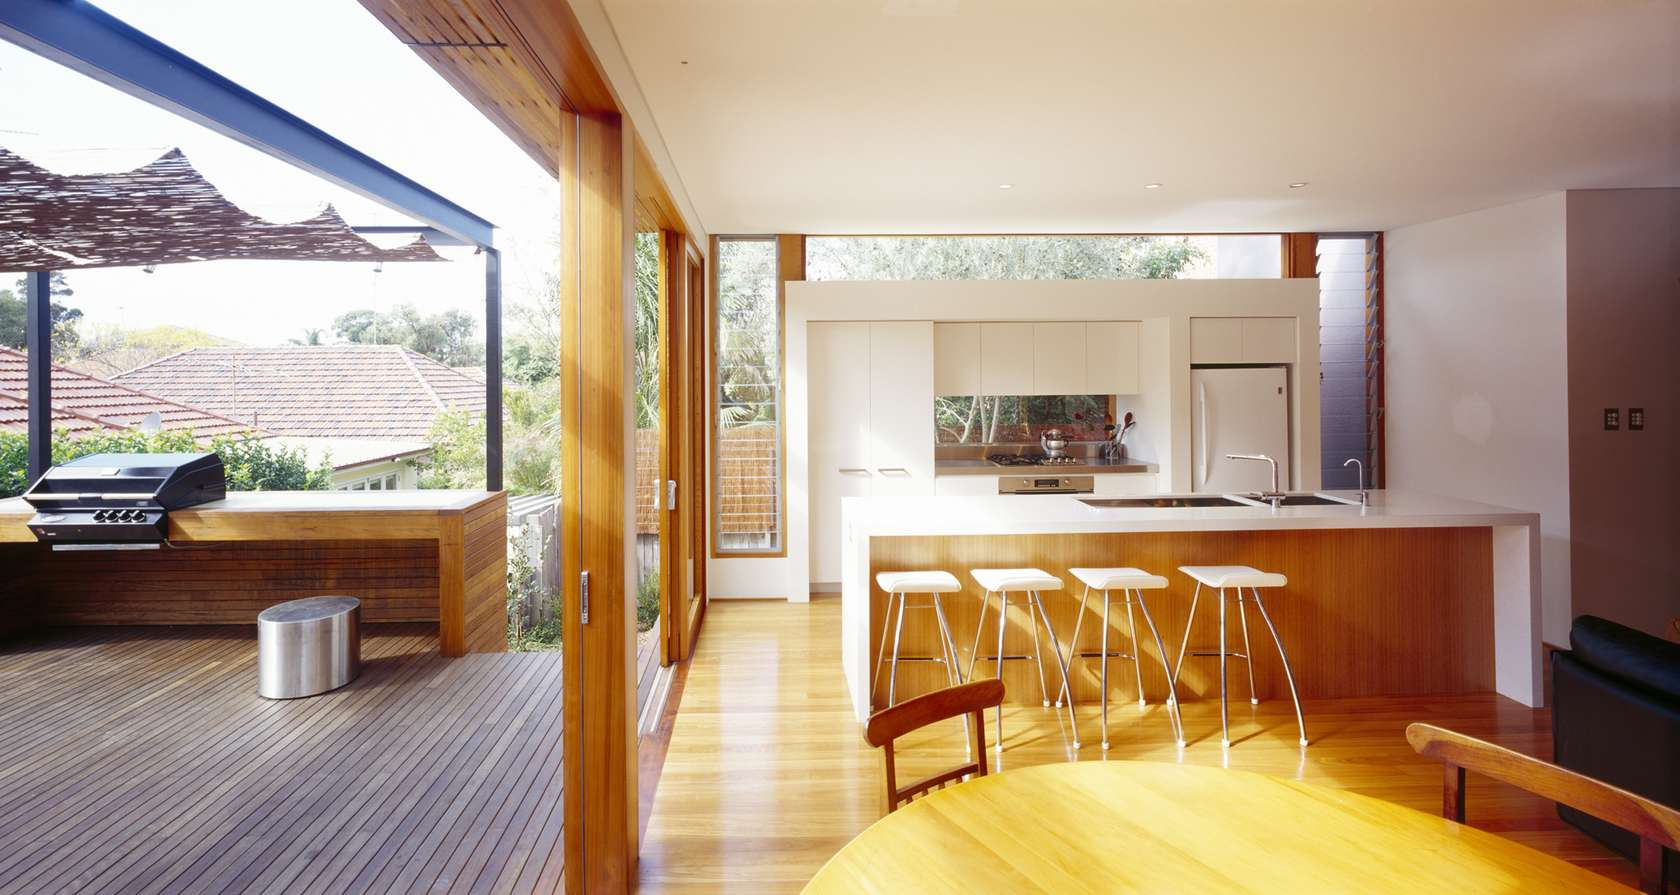 Bronte House by Sam Crawford Architects (via Lunchbox Architect)